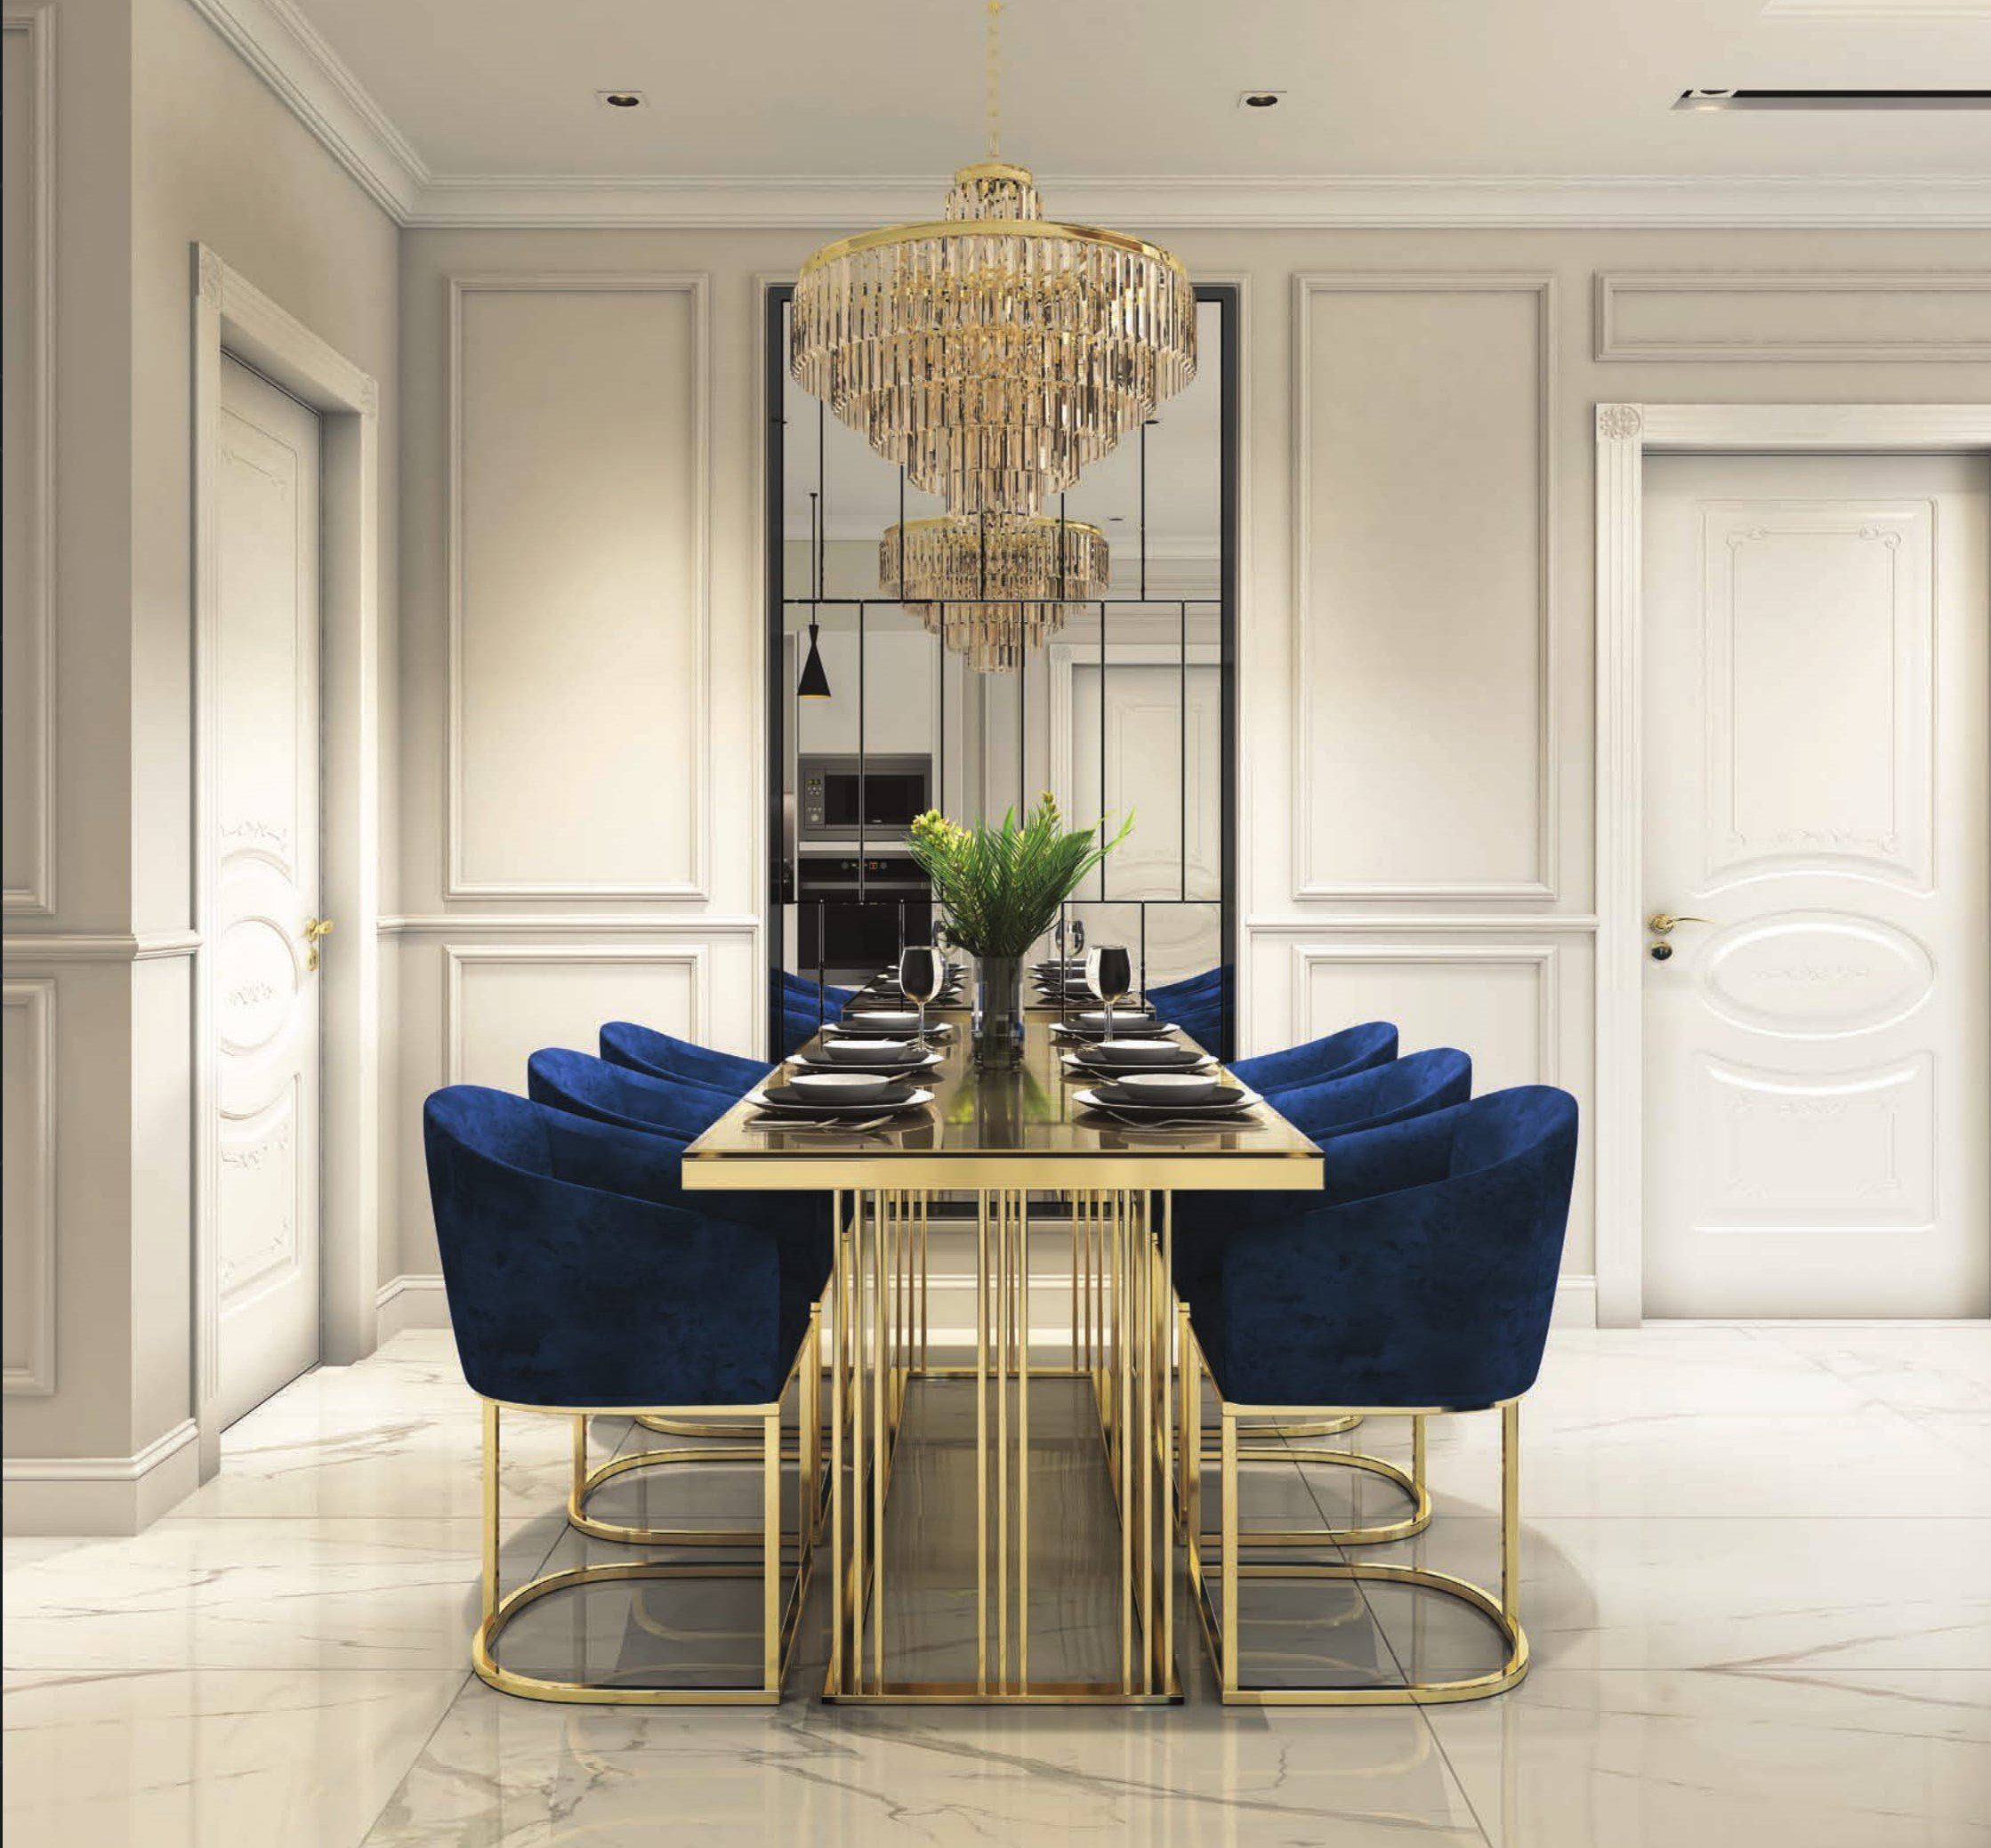 gulberg-mall-apartment-interior-dining-elegant